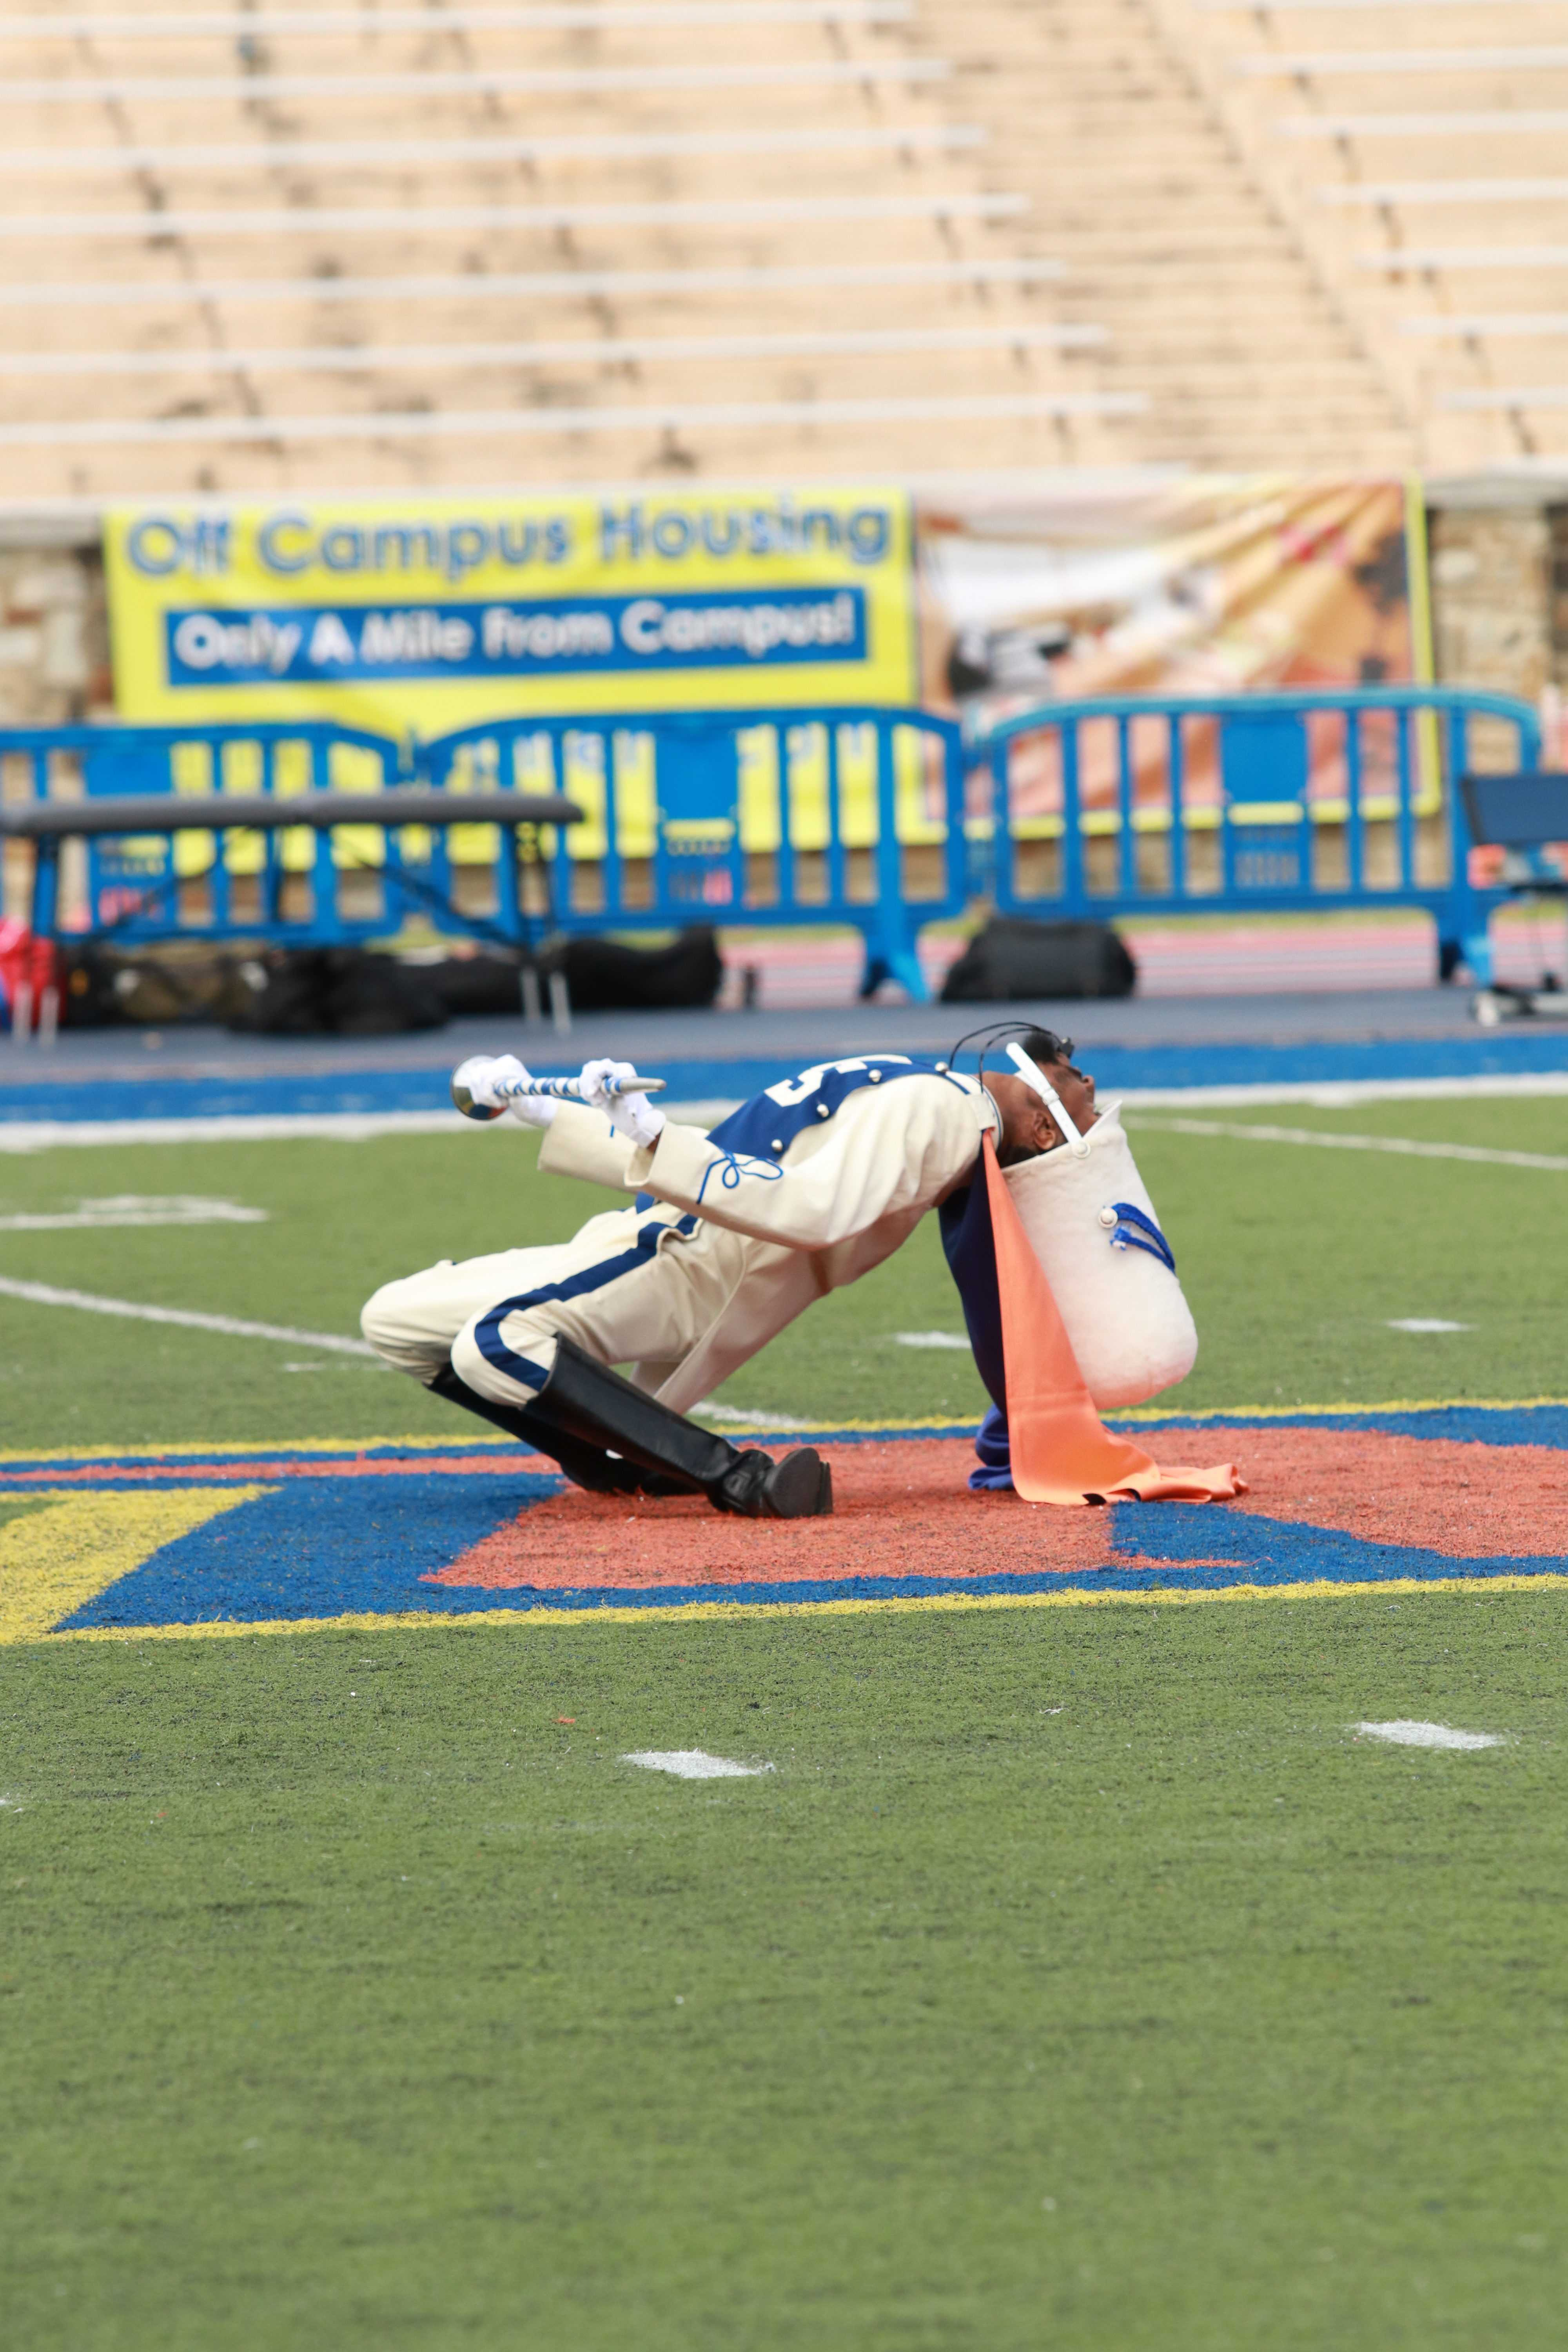 The drum major for the Magnificent Marching Machine begins the halftime show against Holy Cross. Photo by Terry Wright.